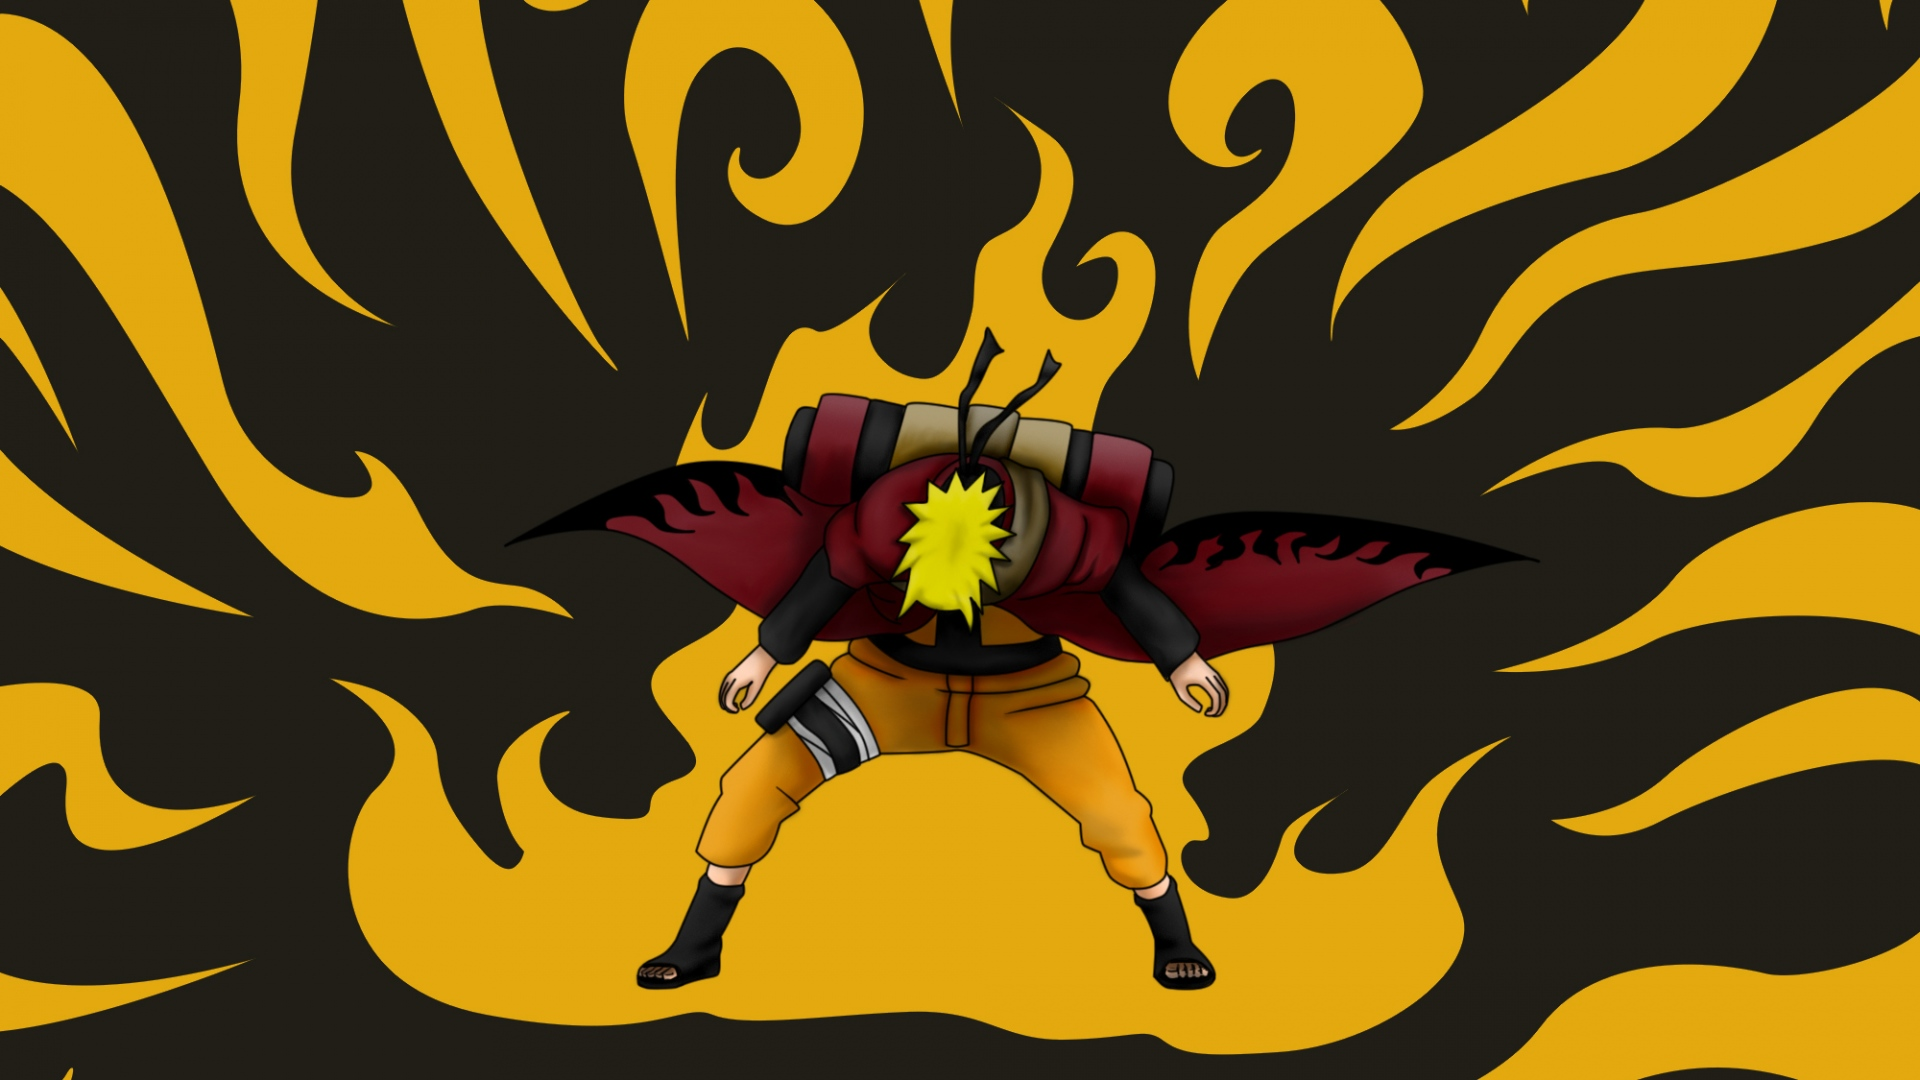 Download Wallpaper 1920x1080 Uzumaki naruto Naruto Guy 1920x1080